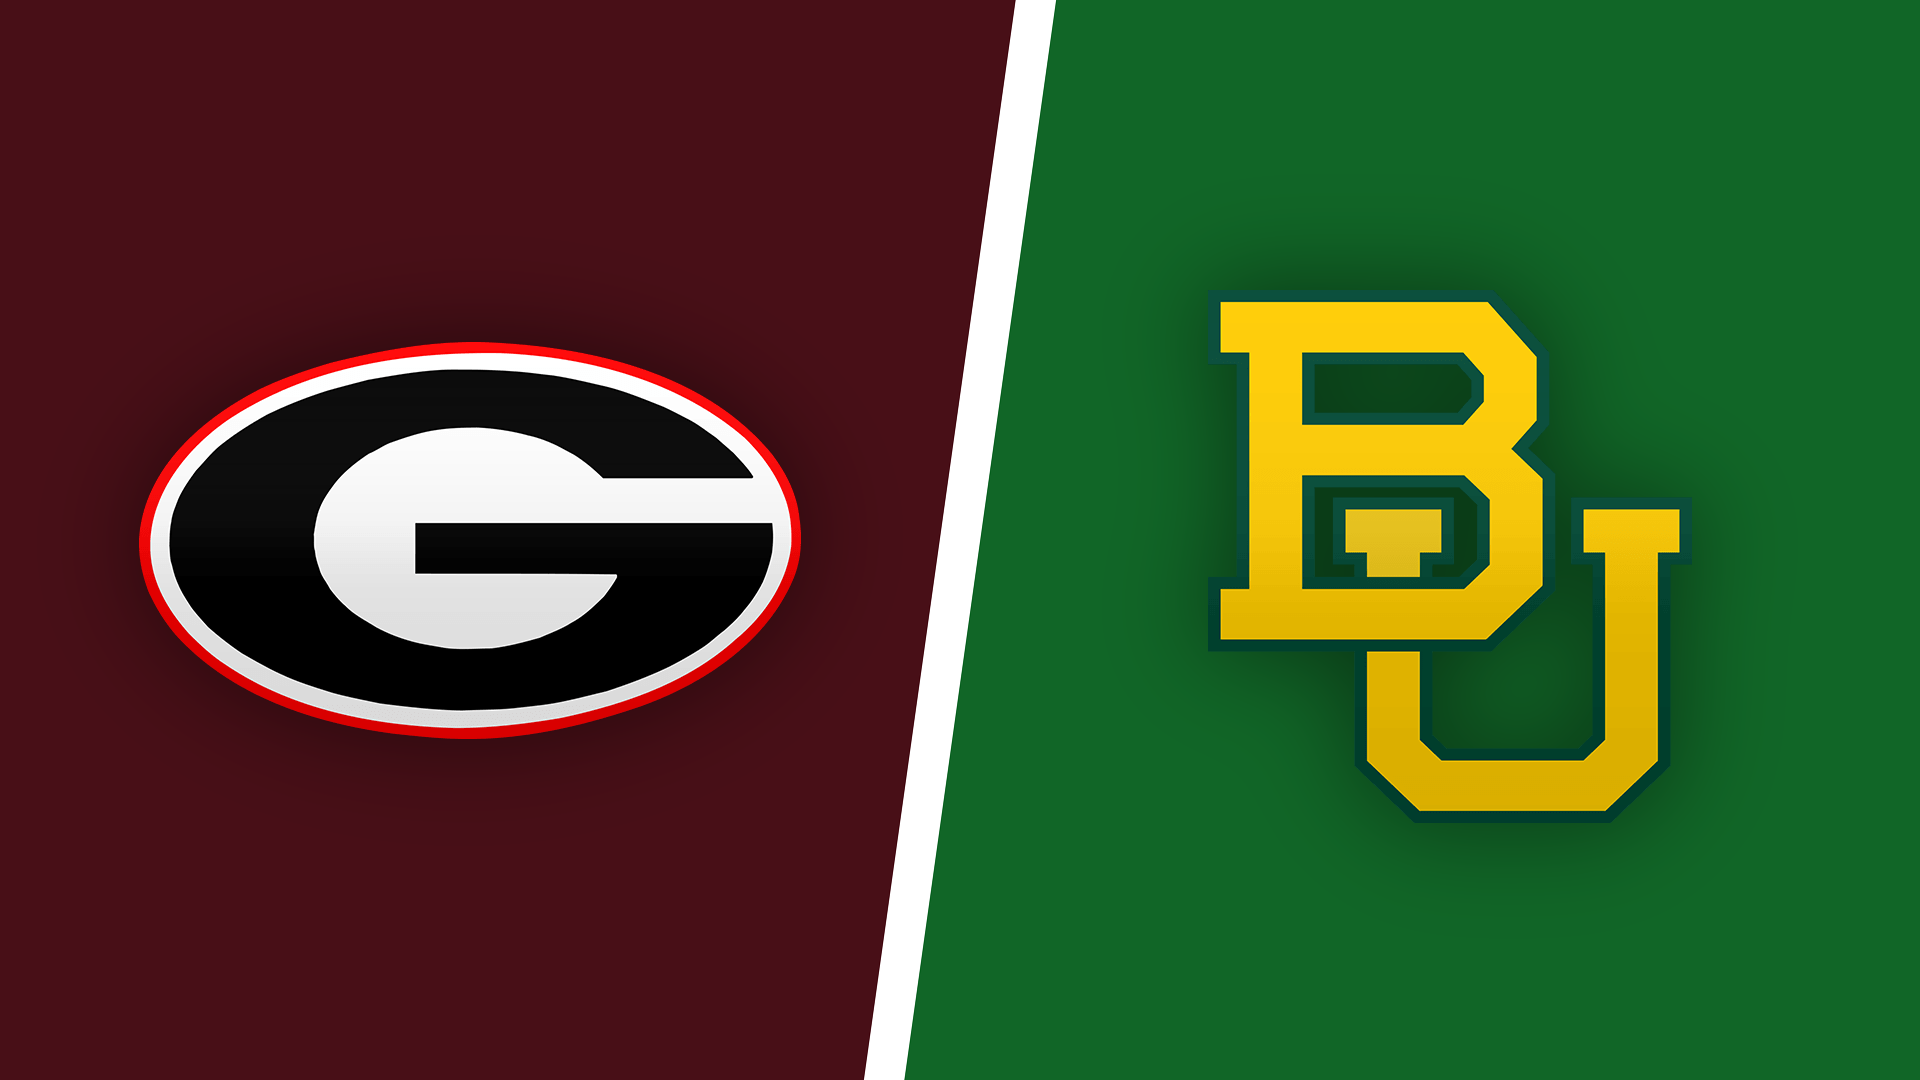 How to Watch Sugar Bowl at Baylor on ESPN Live